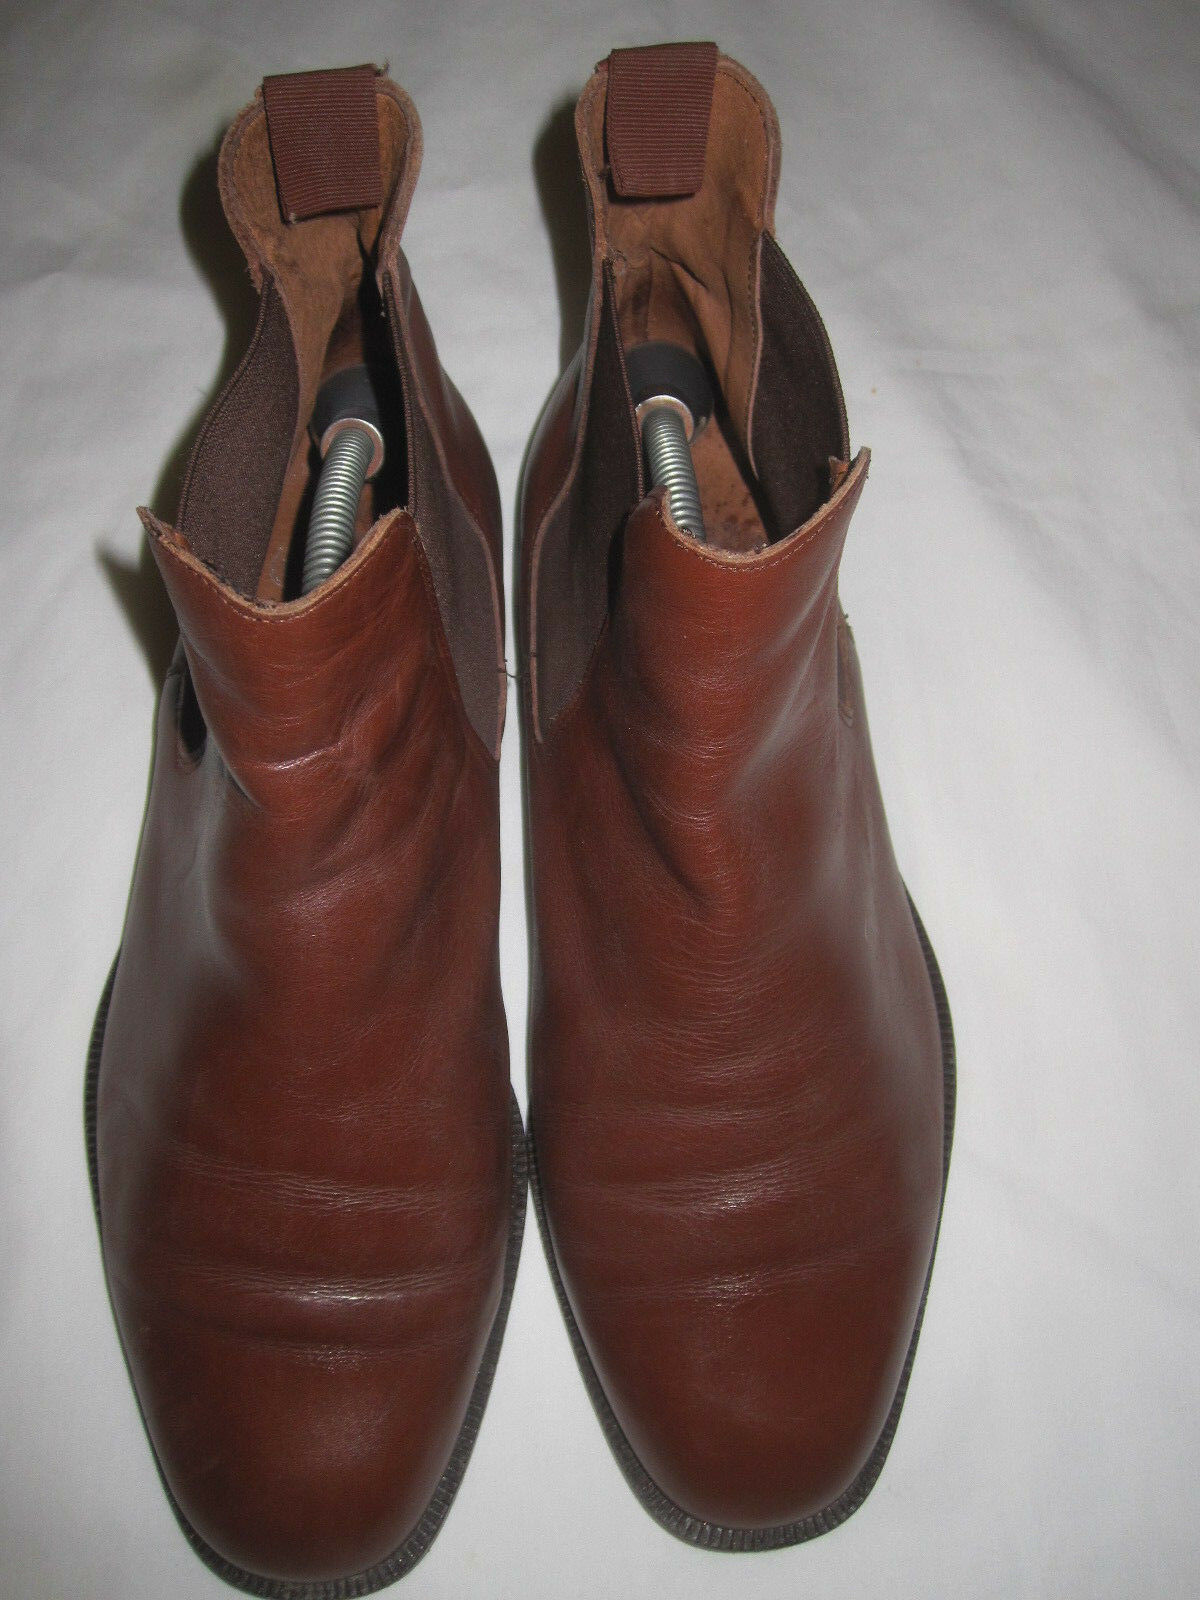 WORKSTEPS MADE IN ENGLAND BY EXPERT SHOESMAKERS BROWNTOP QUALITY DRESS BOOT 9.5 Scarpe classiche da uomo